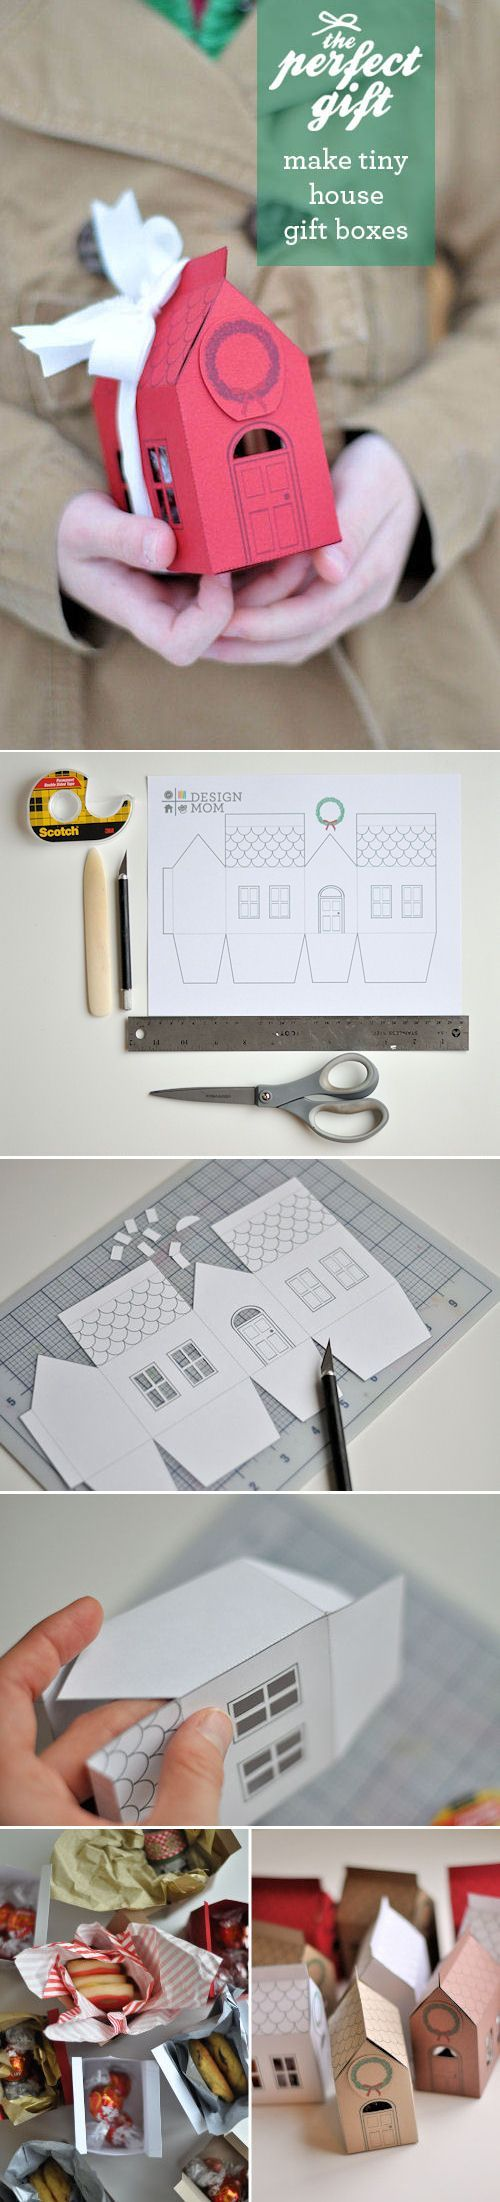 House Gift Box - free printable template download - from Design Mom (the template is white so you can print on patterned paper or stamp it or whatever you like for gifting all year).